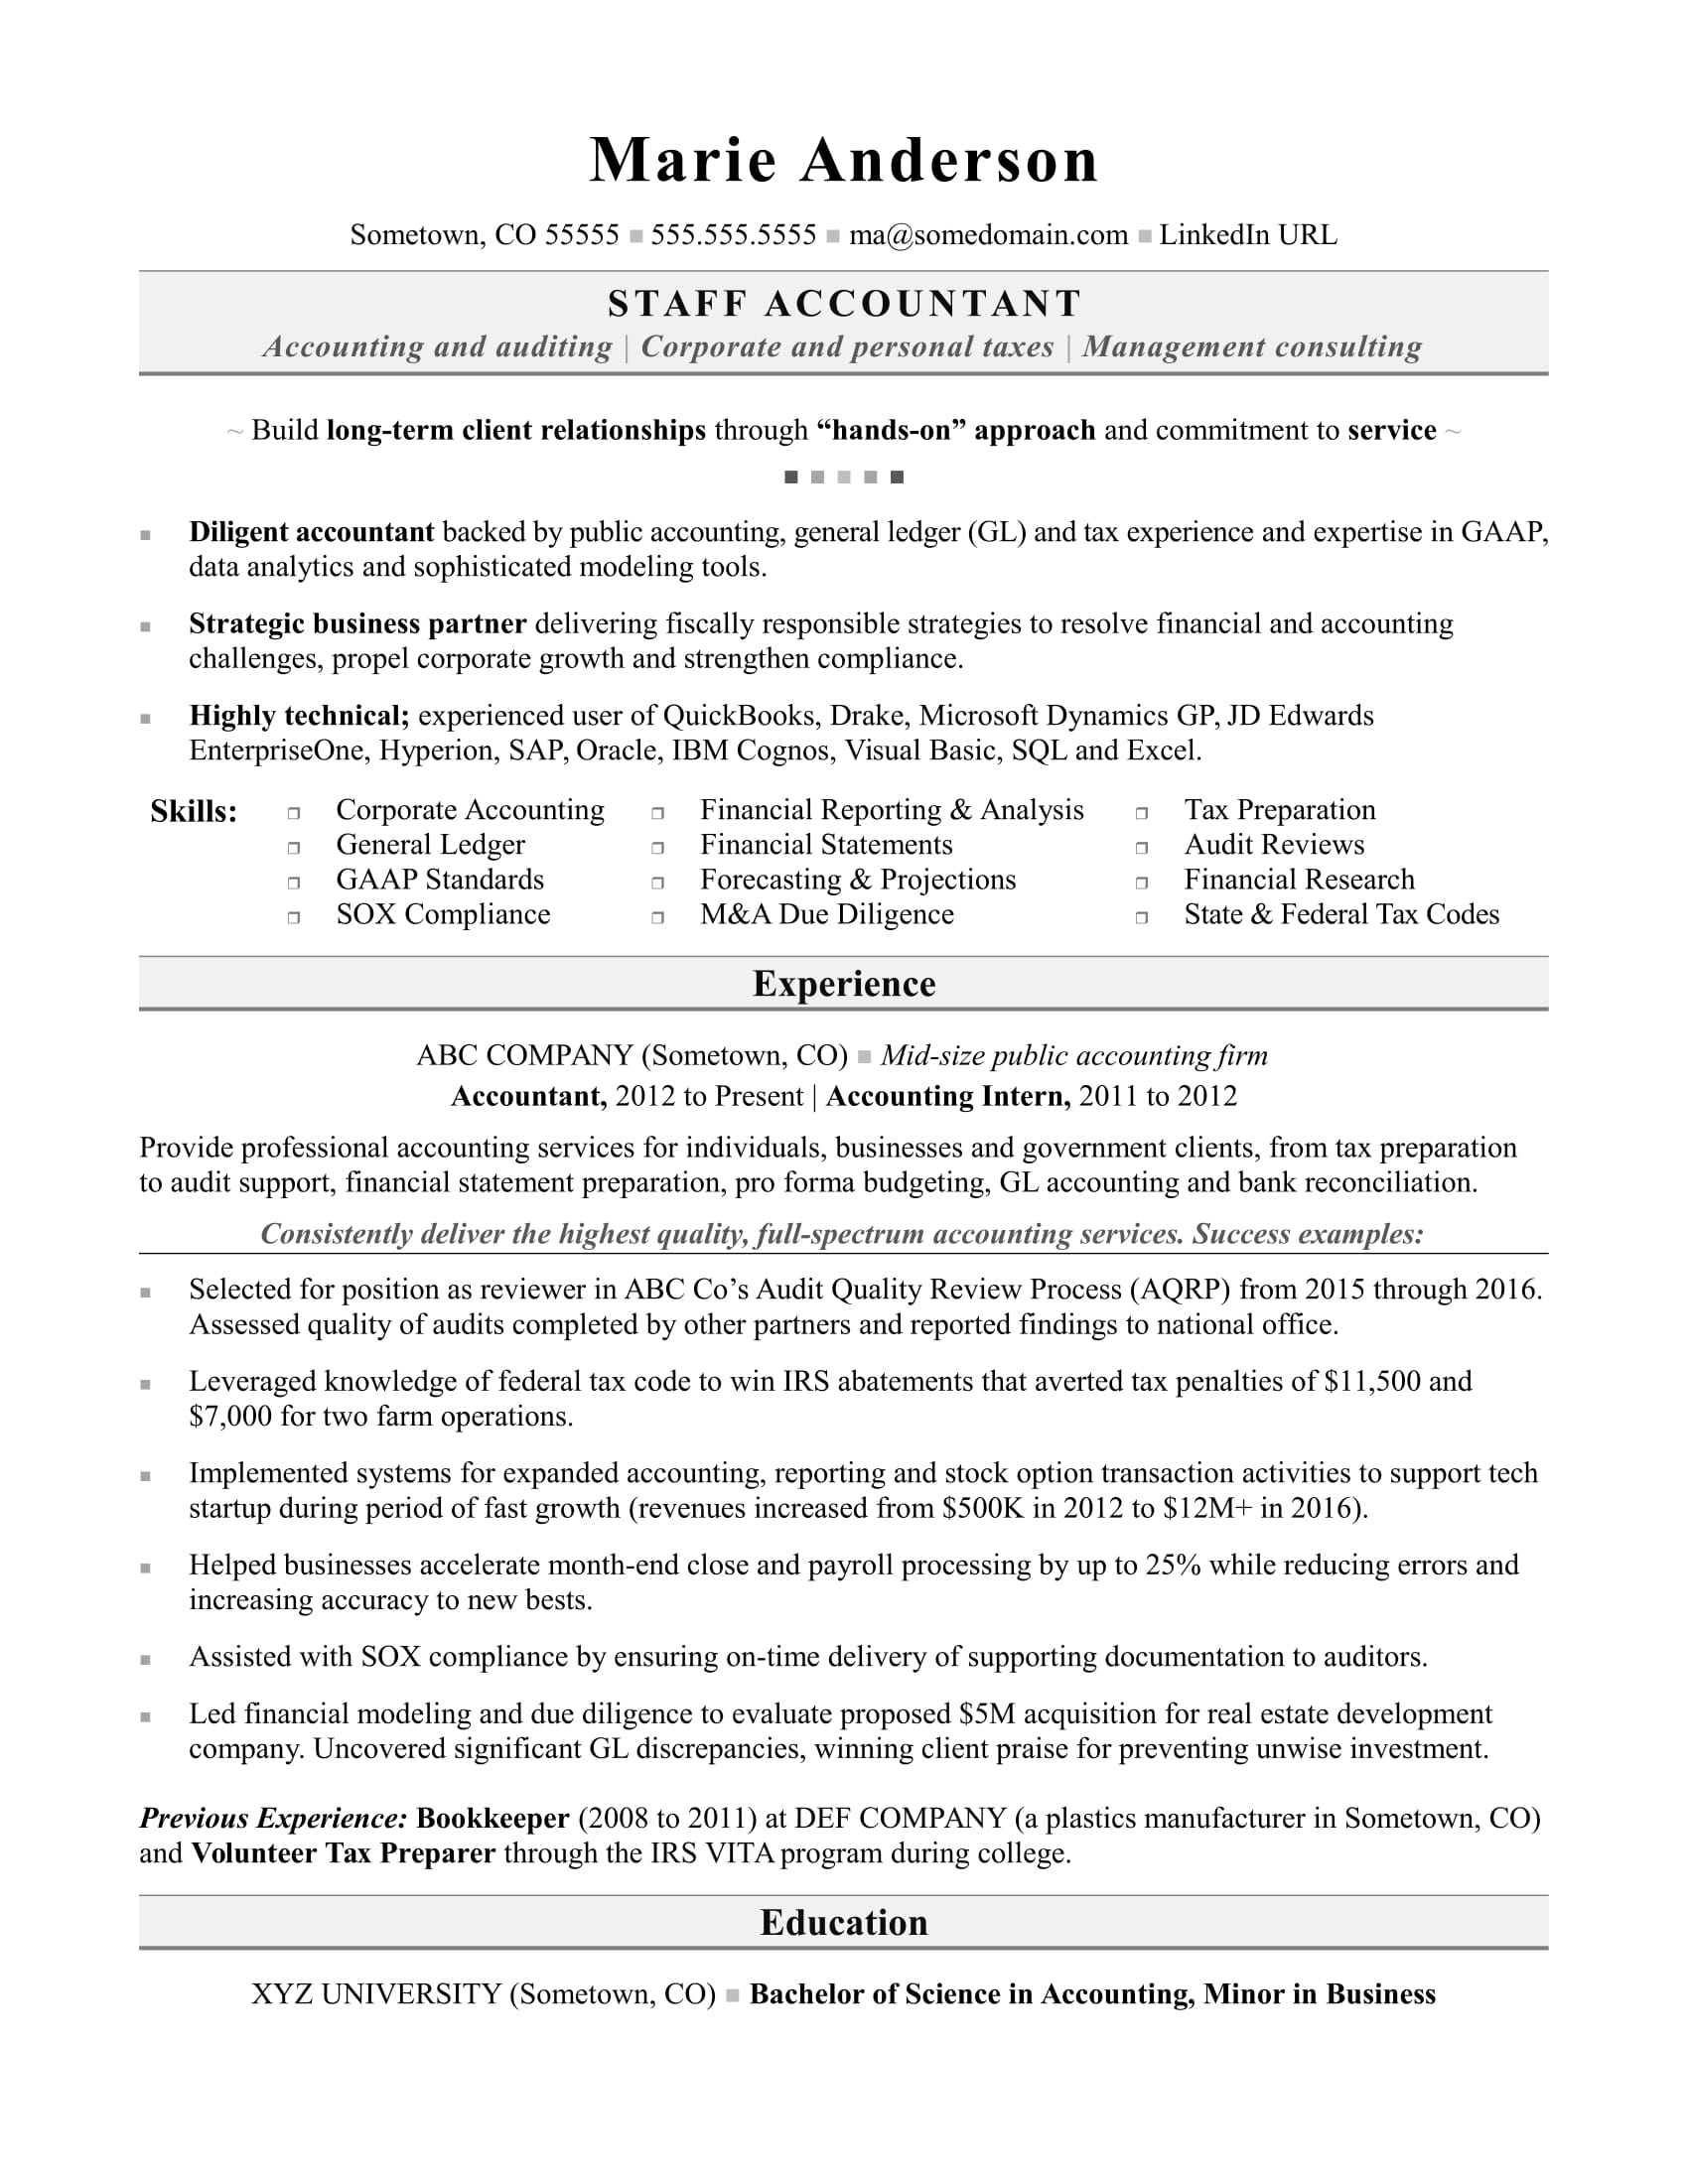 accounting resume sample monster writing services accountant free healthcare samples Resume Accounting Resume Writing Services